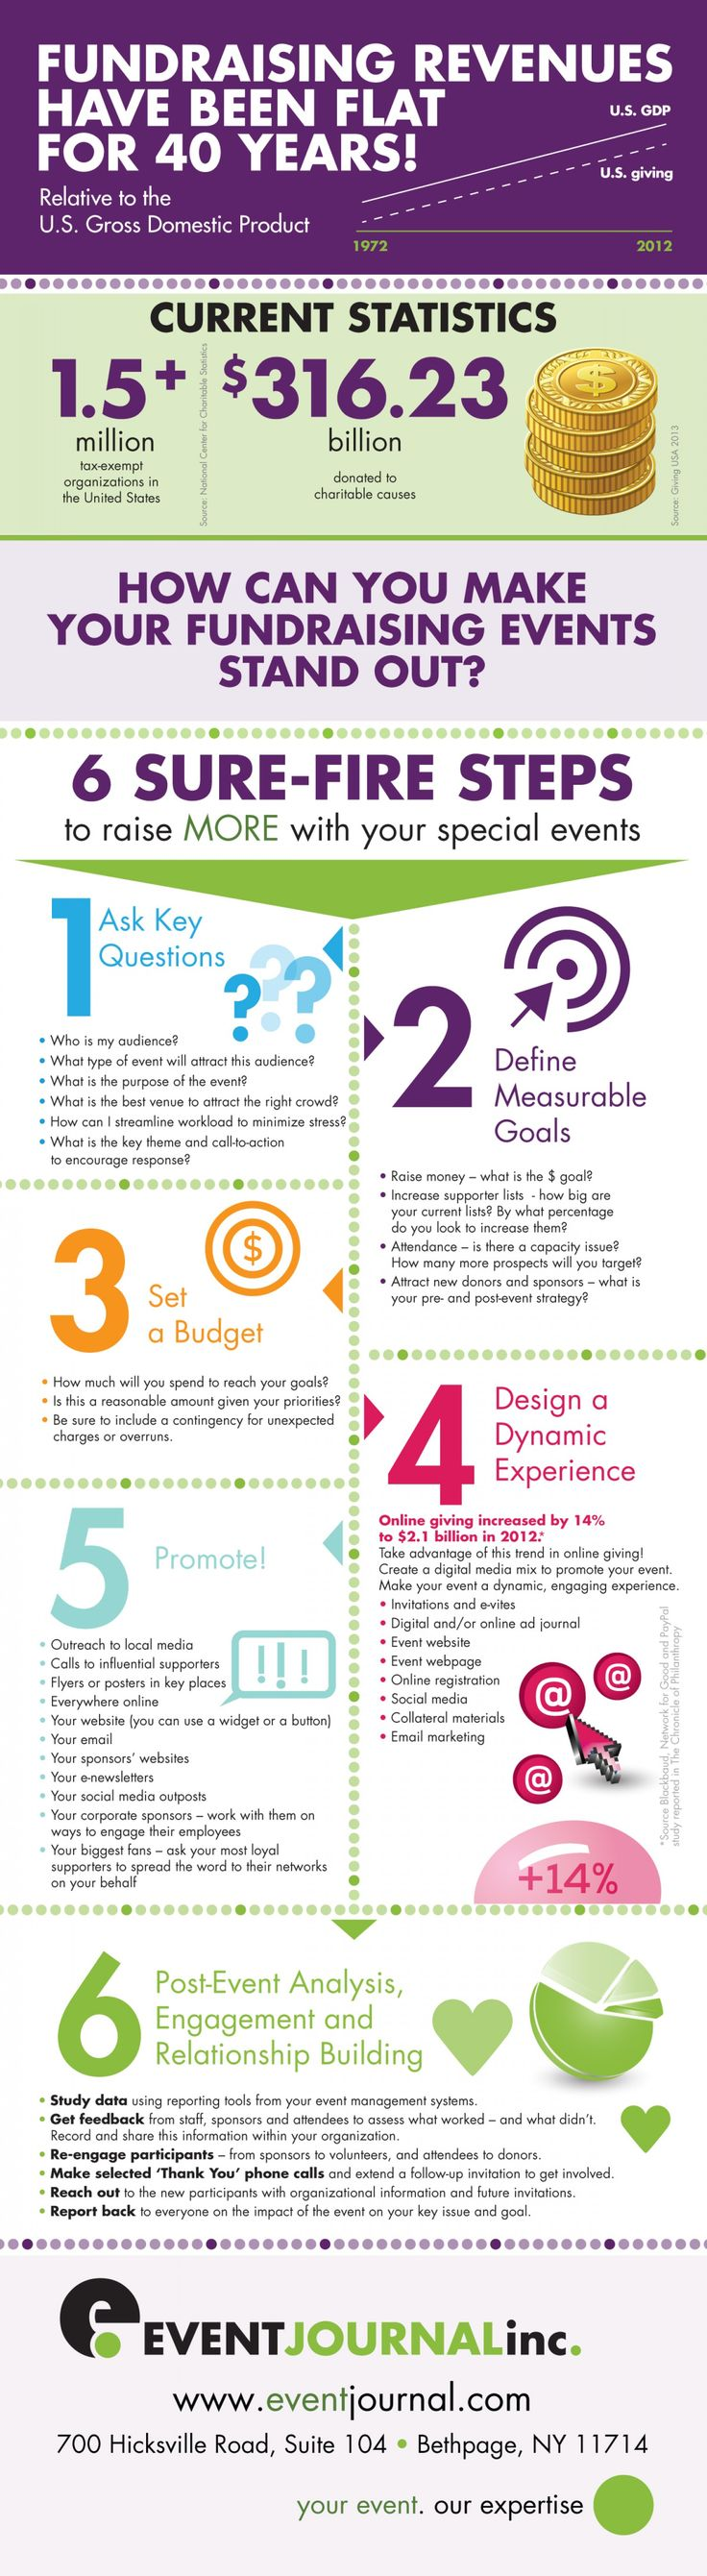 fundraising infographic : 6 easy-to-follow steps to make ...